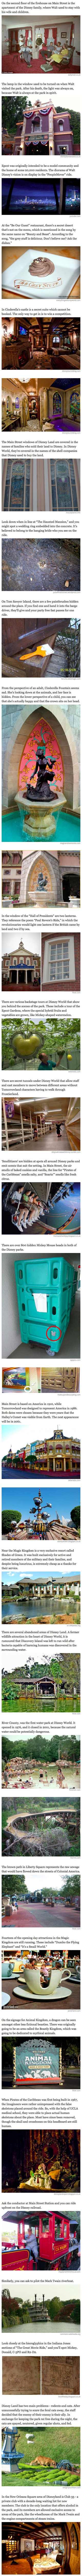 25 secret things most people don't know about Disney parks.